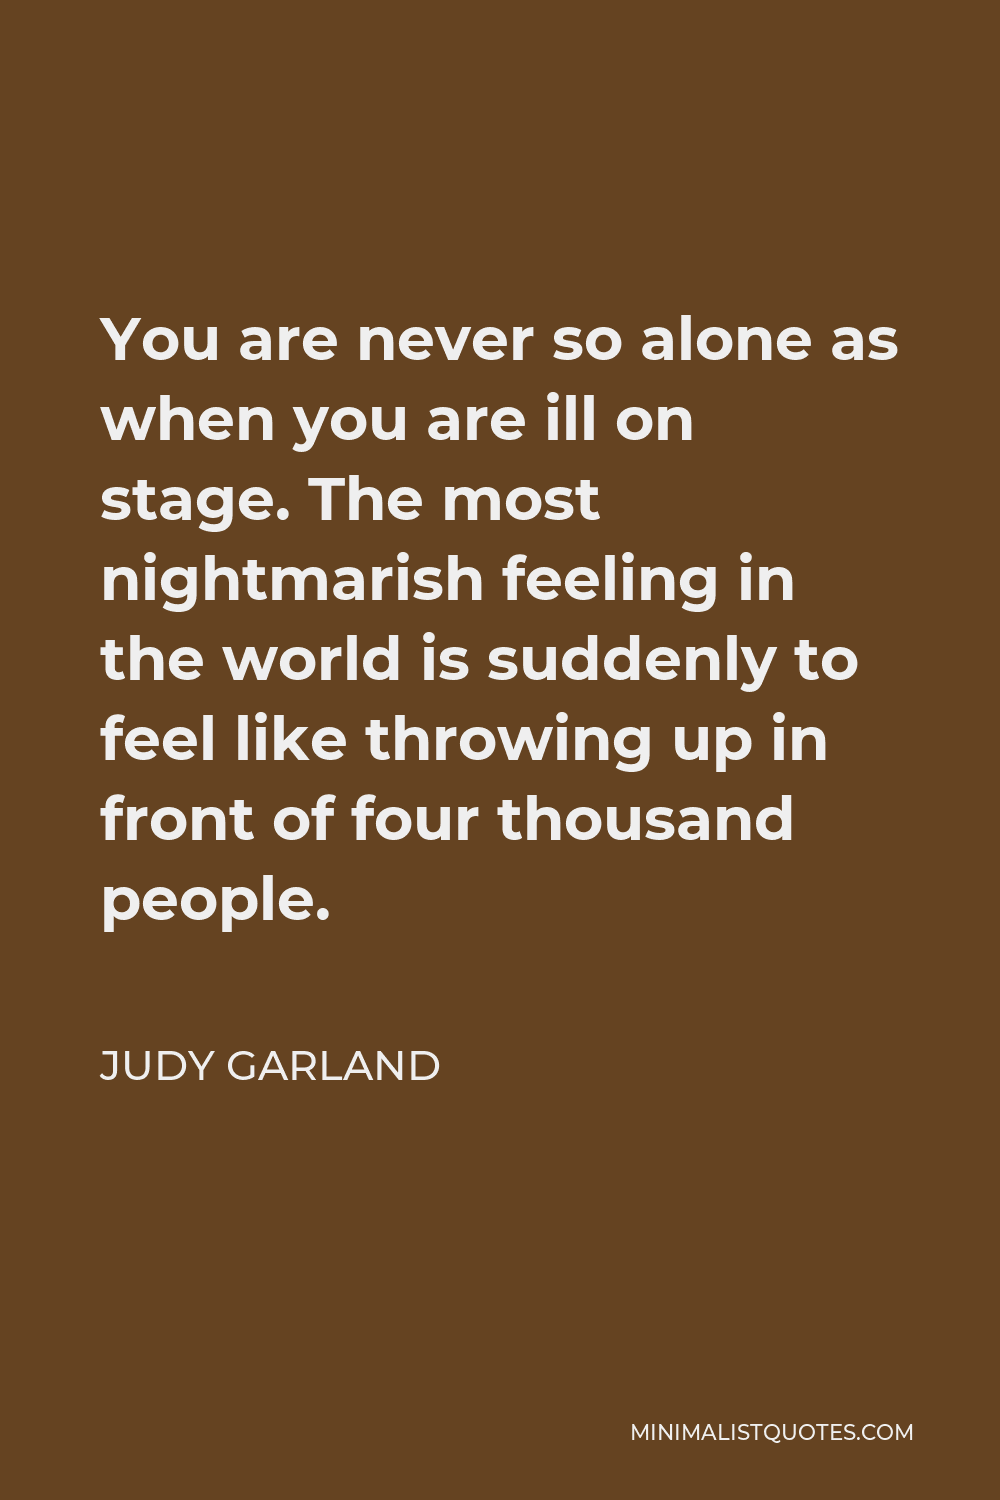 Judy Garland Quote - You are never so alone as when you are ill on stage. The most nightmarish feeling in the world is suddenly to feel like throwing up in front of four thousand people.